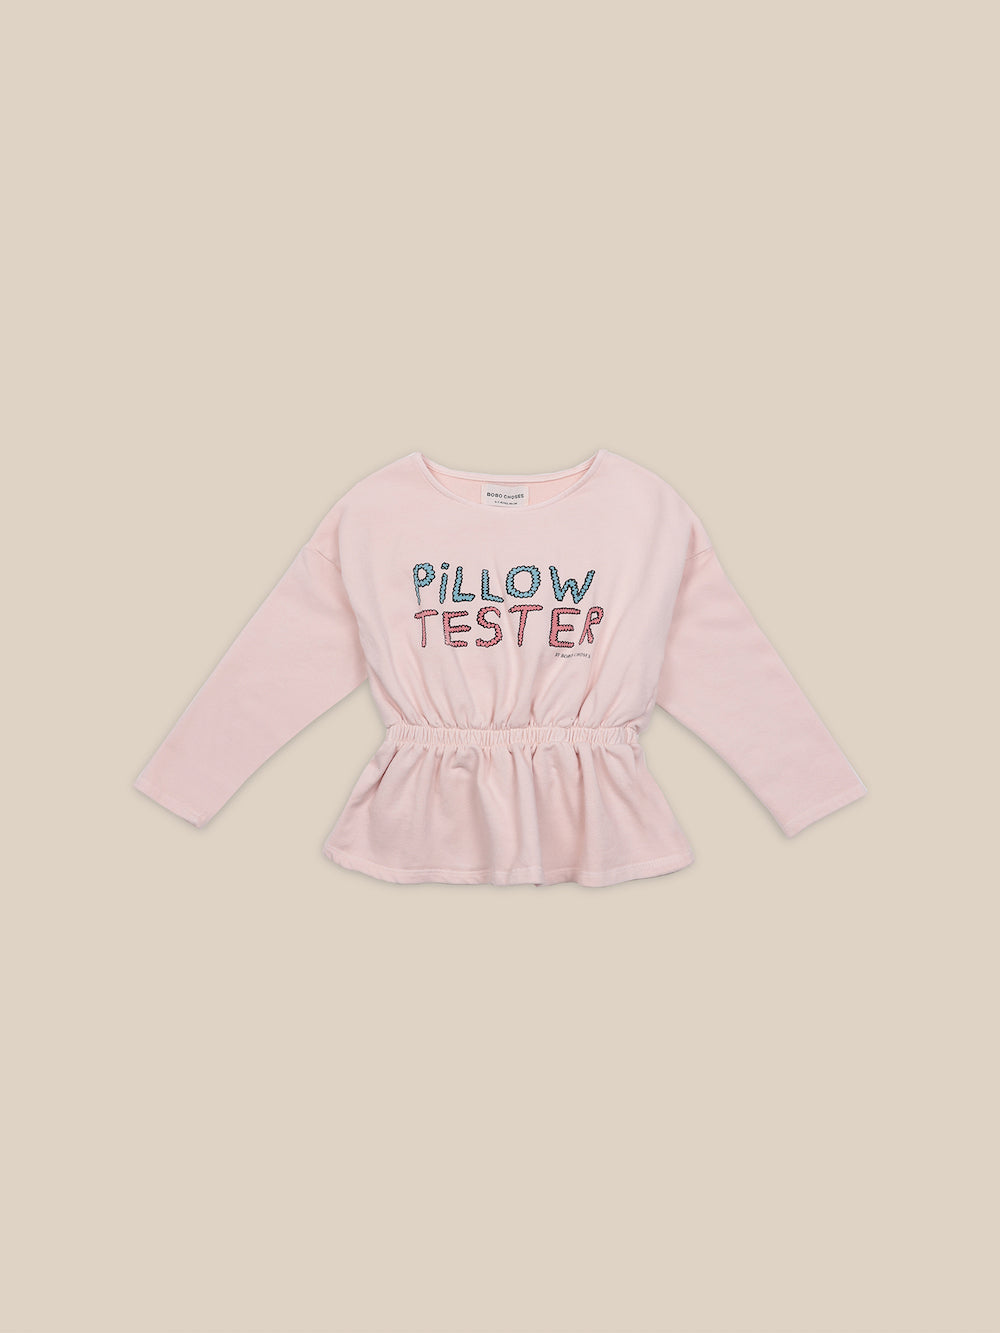 Bobo Choses Pillow Tester Girls Sweatshirt